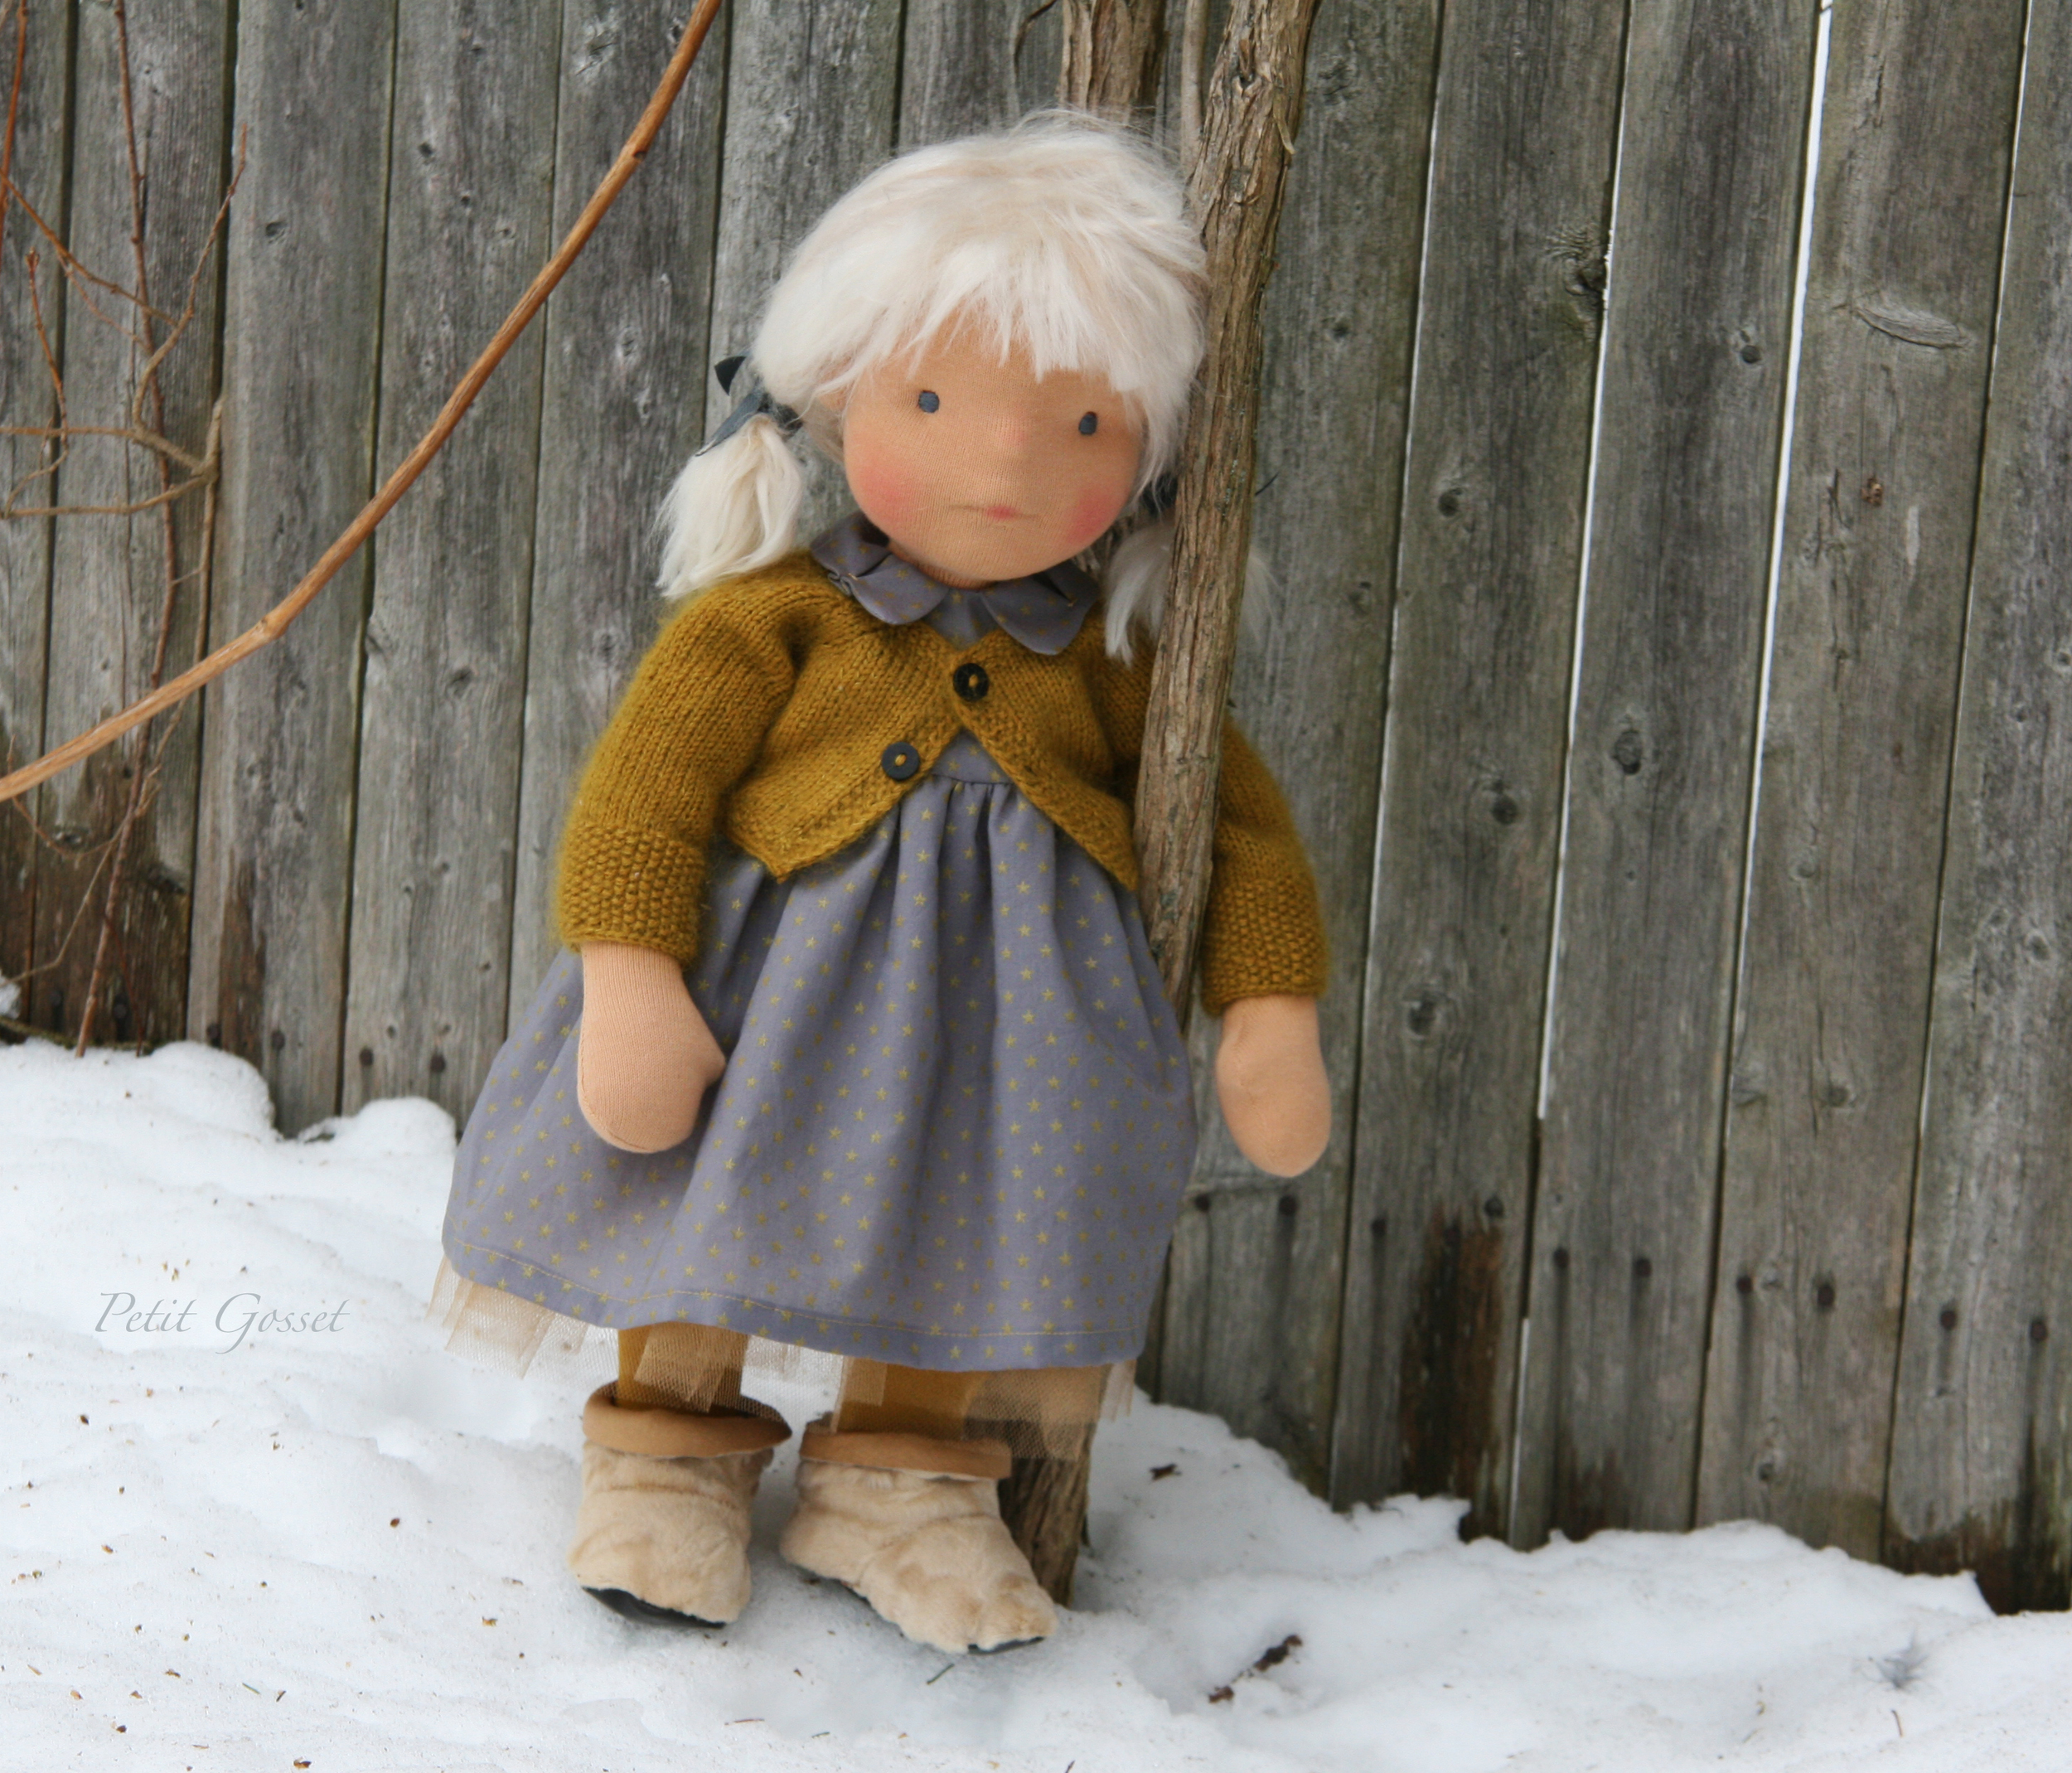 Malou - a natural fiber art doll by PetitGosset